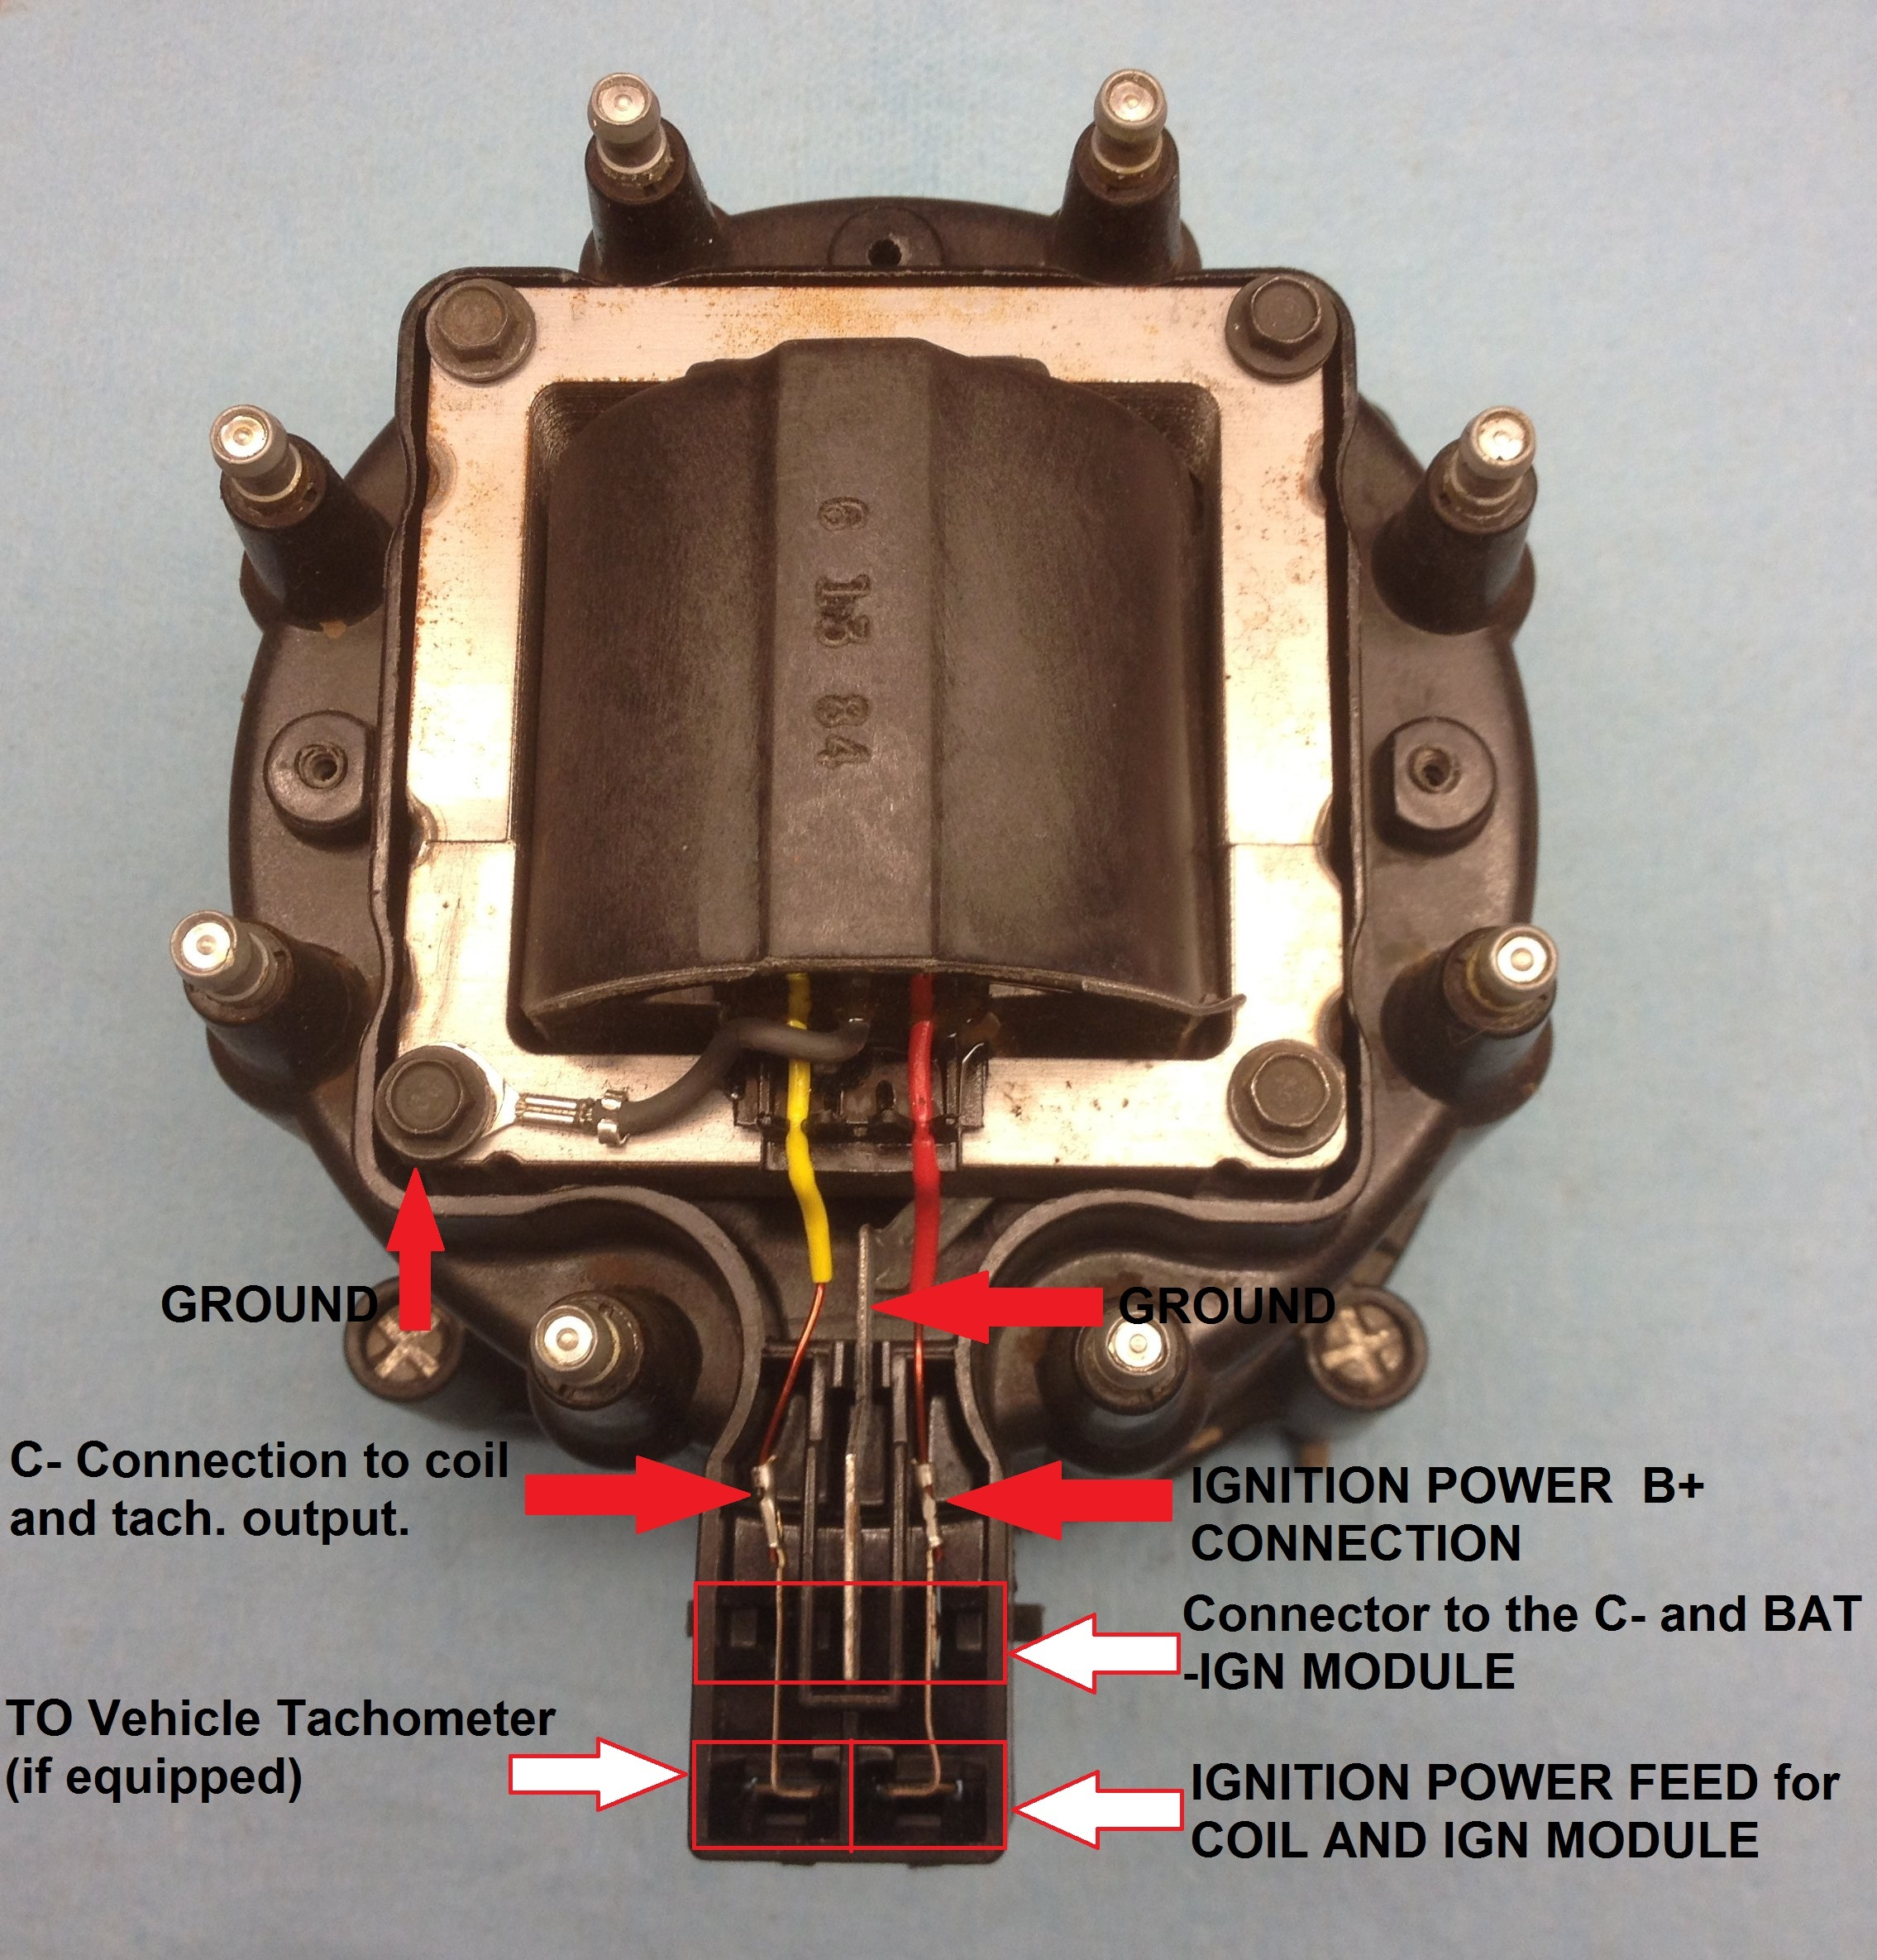 Gm Hei Tachometer Wiring Diagram Free Picture | Site Wiring Diagrams seat | Chevrolet Hei Distributor Wiring Diagram |  | wiring diagram library